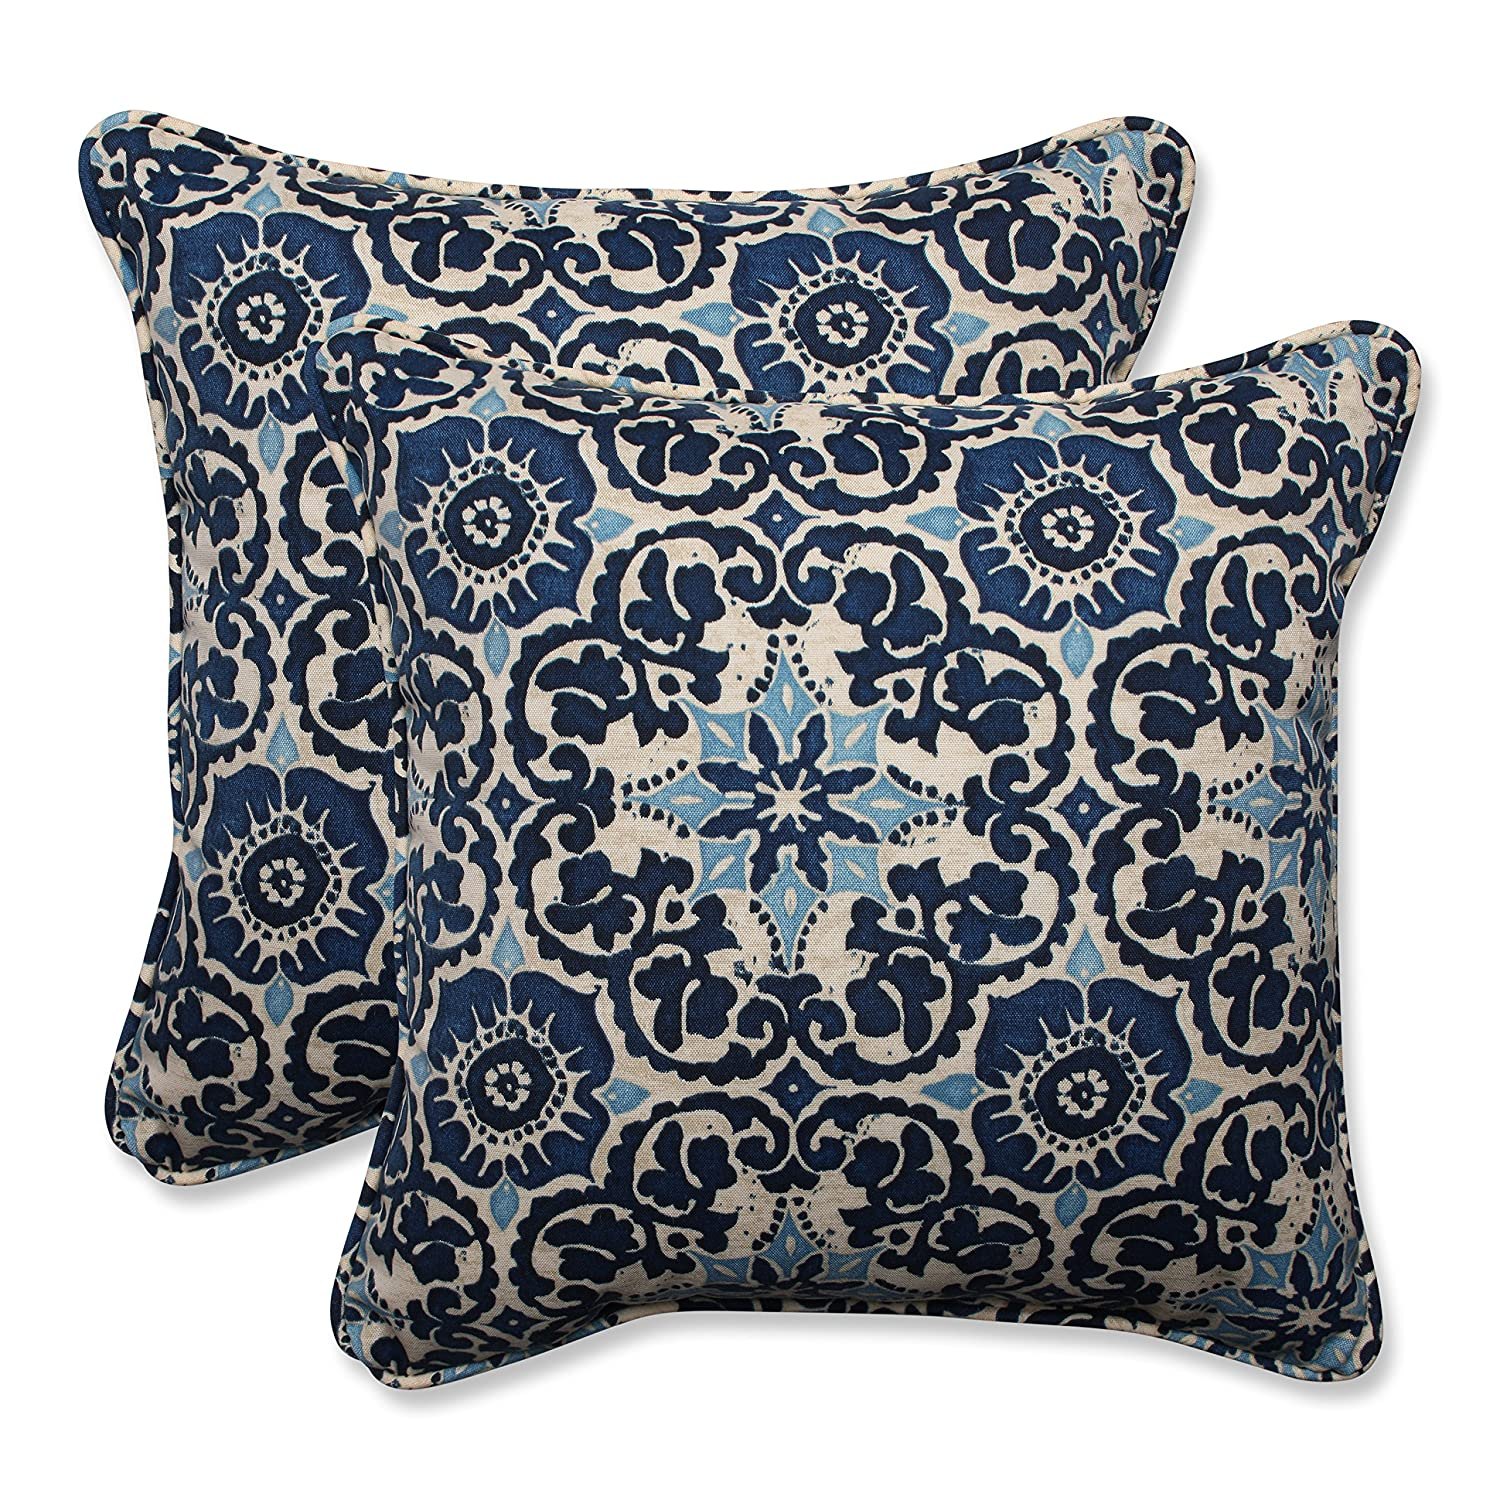 Navy blue and yellow decorative pillows - Amazon Com Pillow Perfect Outdoor Indoor Woodblock Prism Throw Pillow Set Of 2 18 5 Blue Home Kitchen